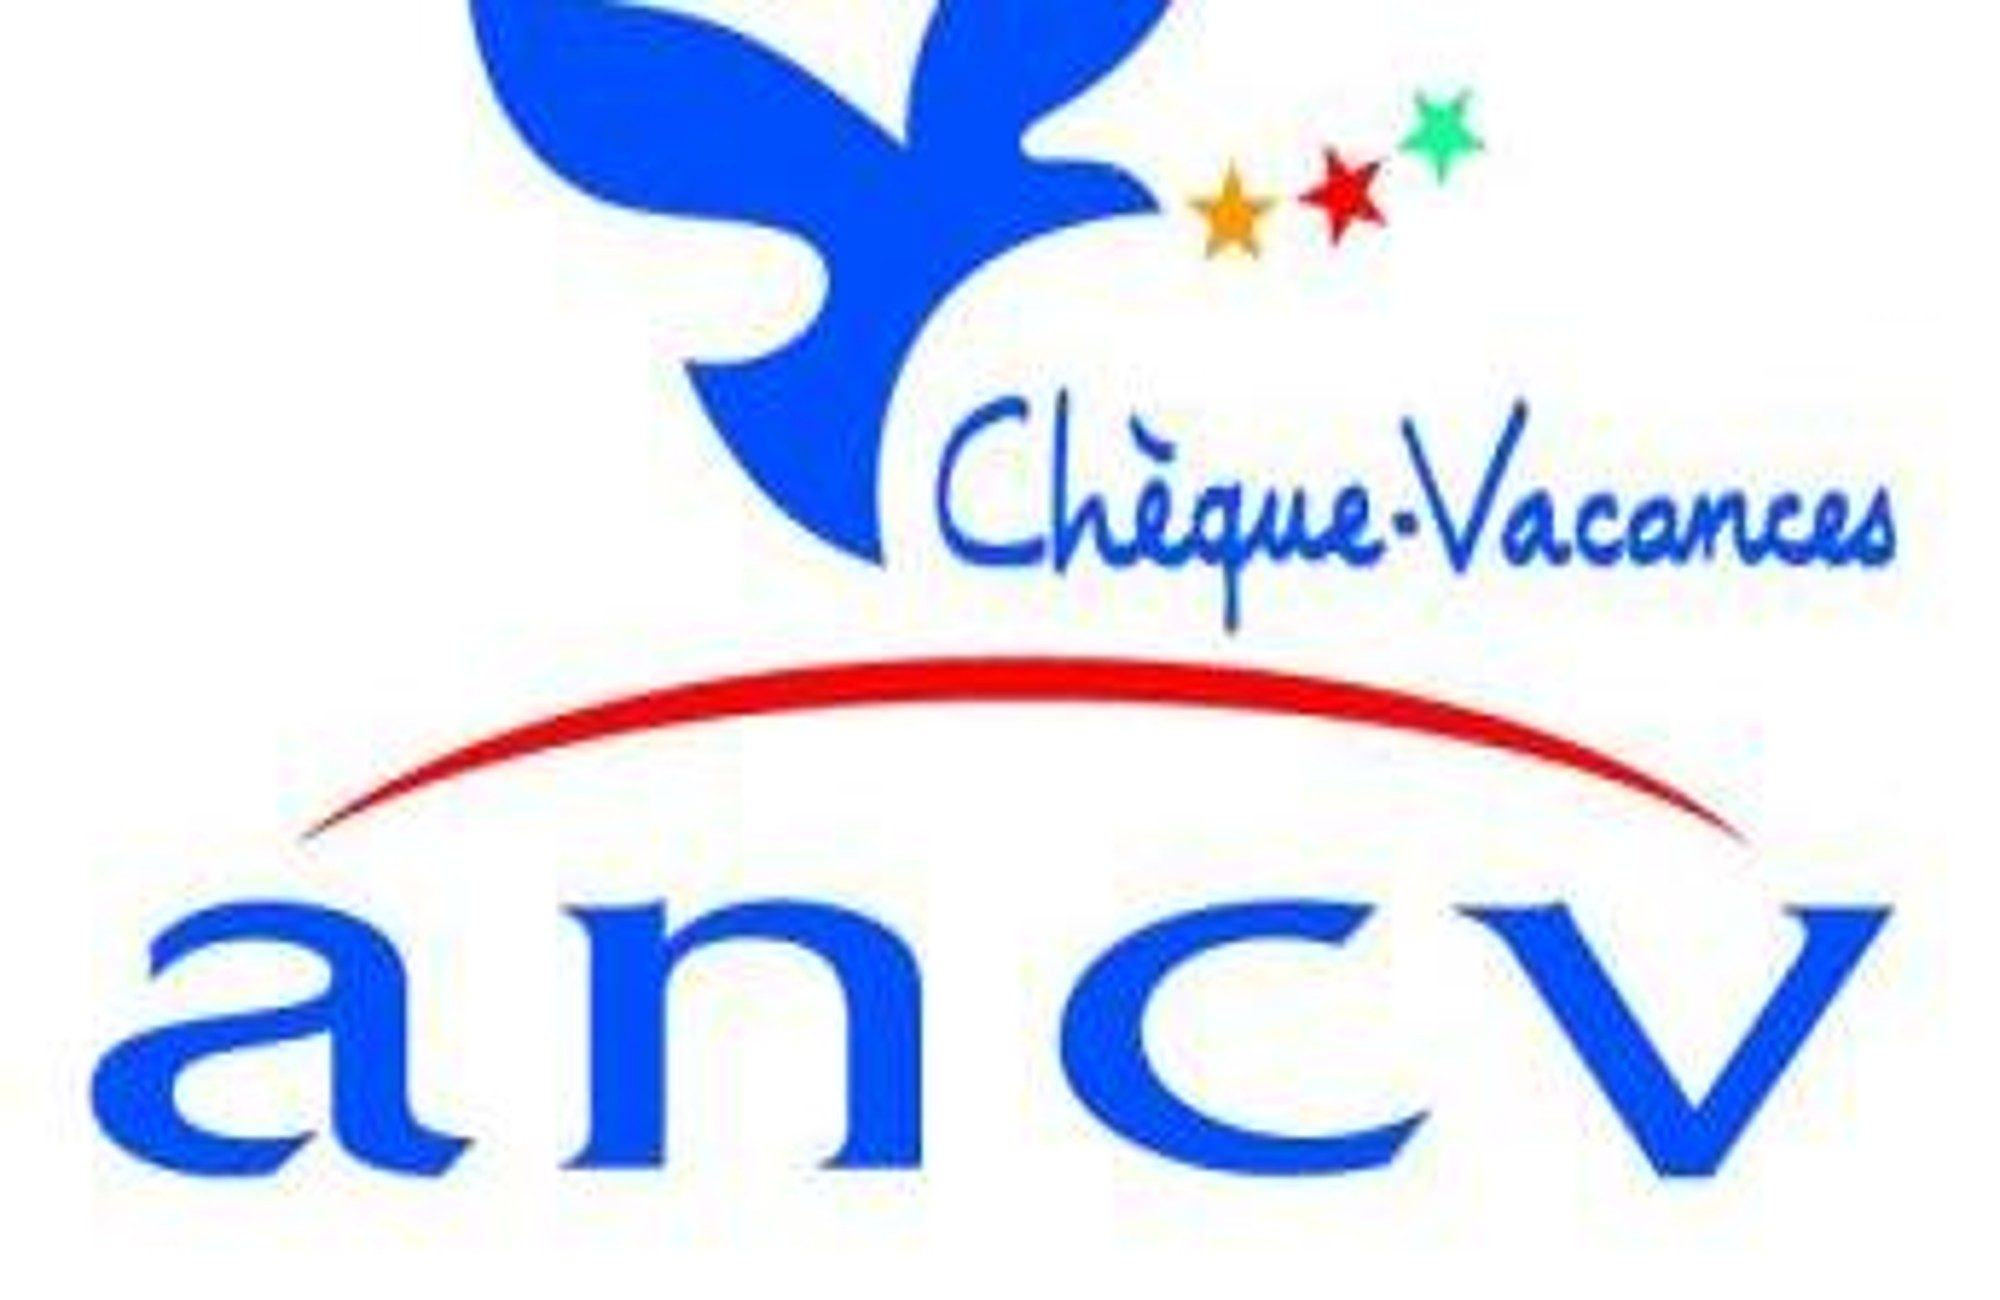 Var : 4.000 cheques vacances 500 euros available to revive the tourism